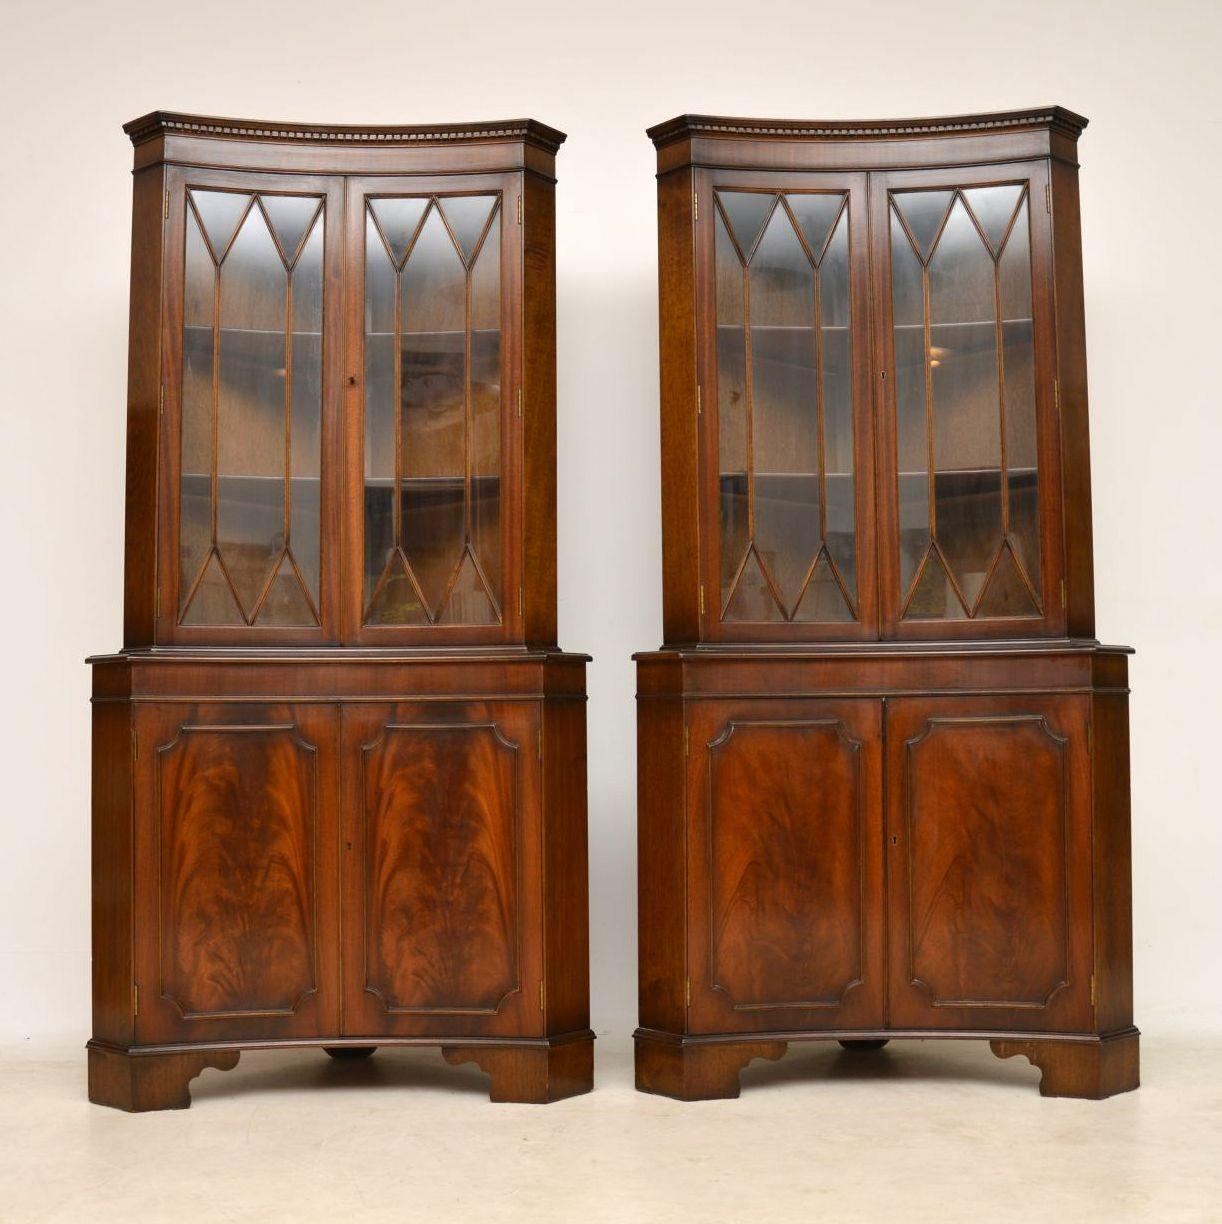 Pair Of Antique Georgian Style Mahogany Corner Cabinets With Concaved  Fronts. Itu0027s Nice To Find